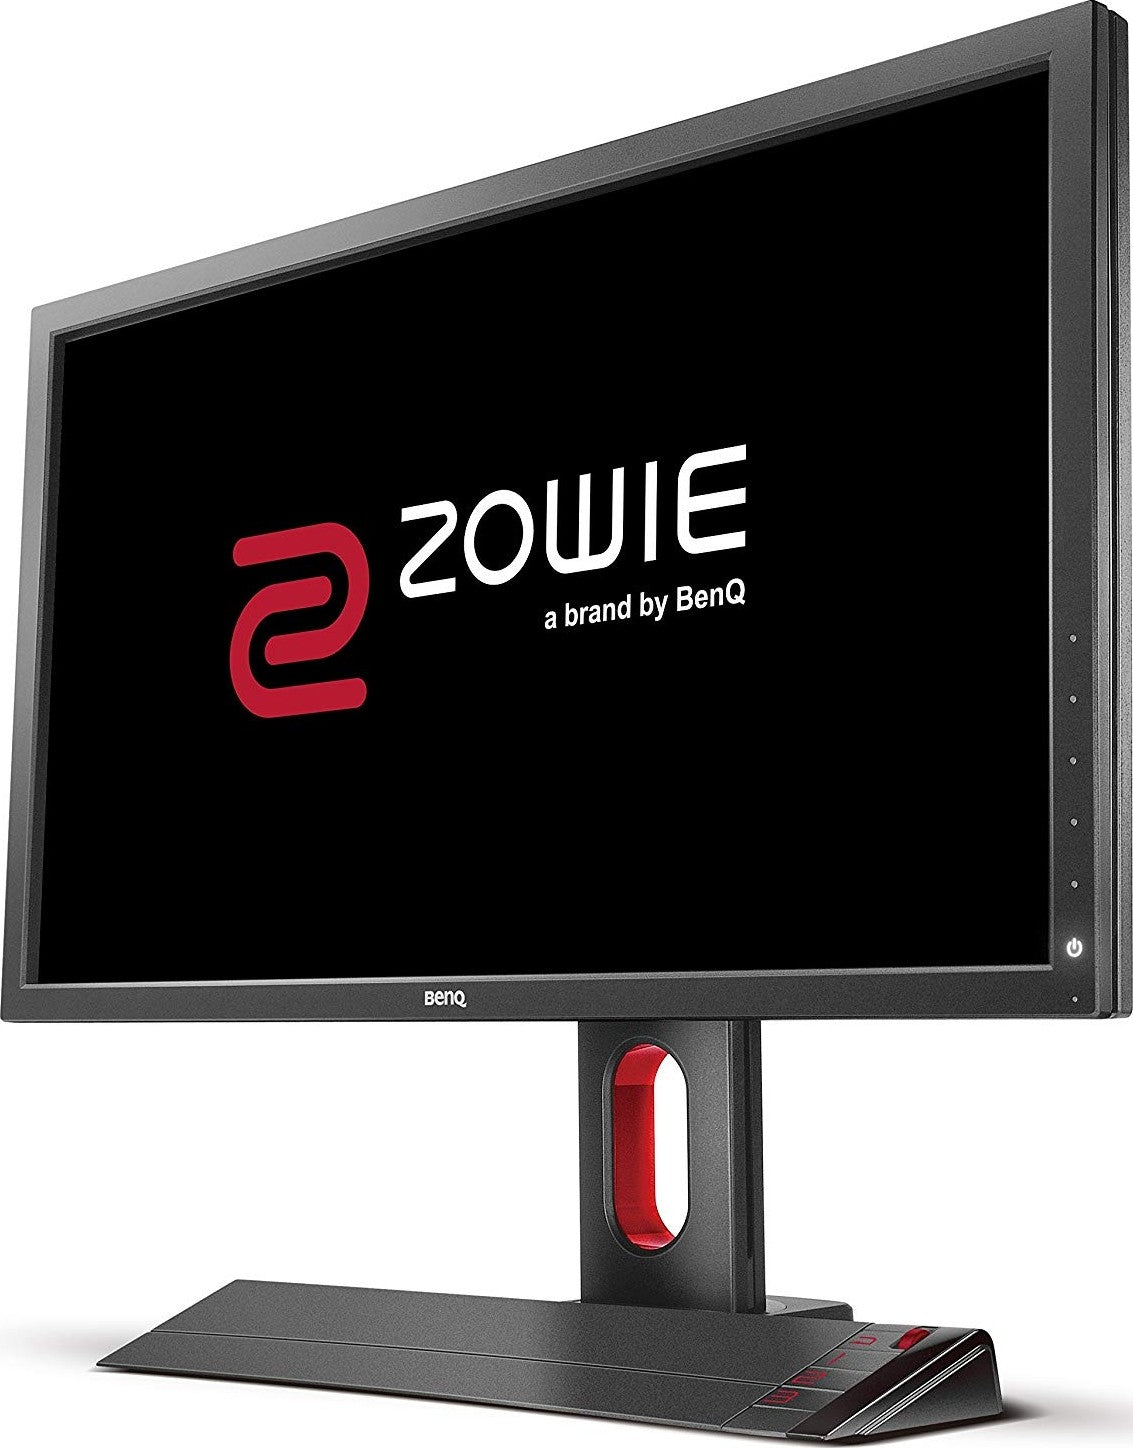 BenQ ZOWIE XL2720 27 Inch 144 Hz e Sports Gaming Monitor with 1 ms, Height Adjustable Stand, S Switch, Black eQualizer, Dark Grey 1920 x 1080 at 144Hz (DVI DL, DP) - tharmart.com